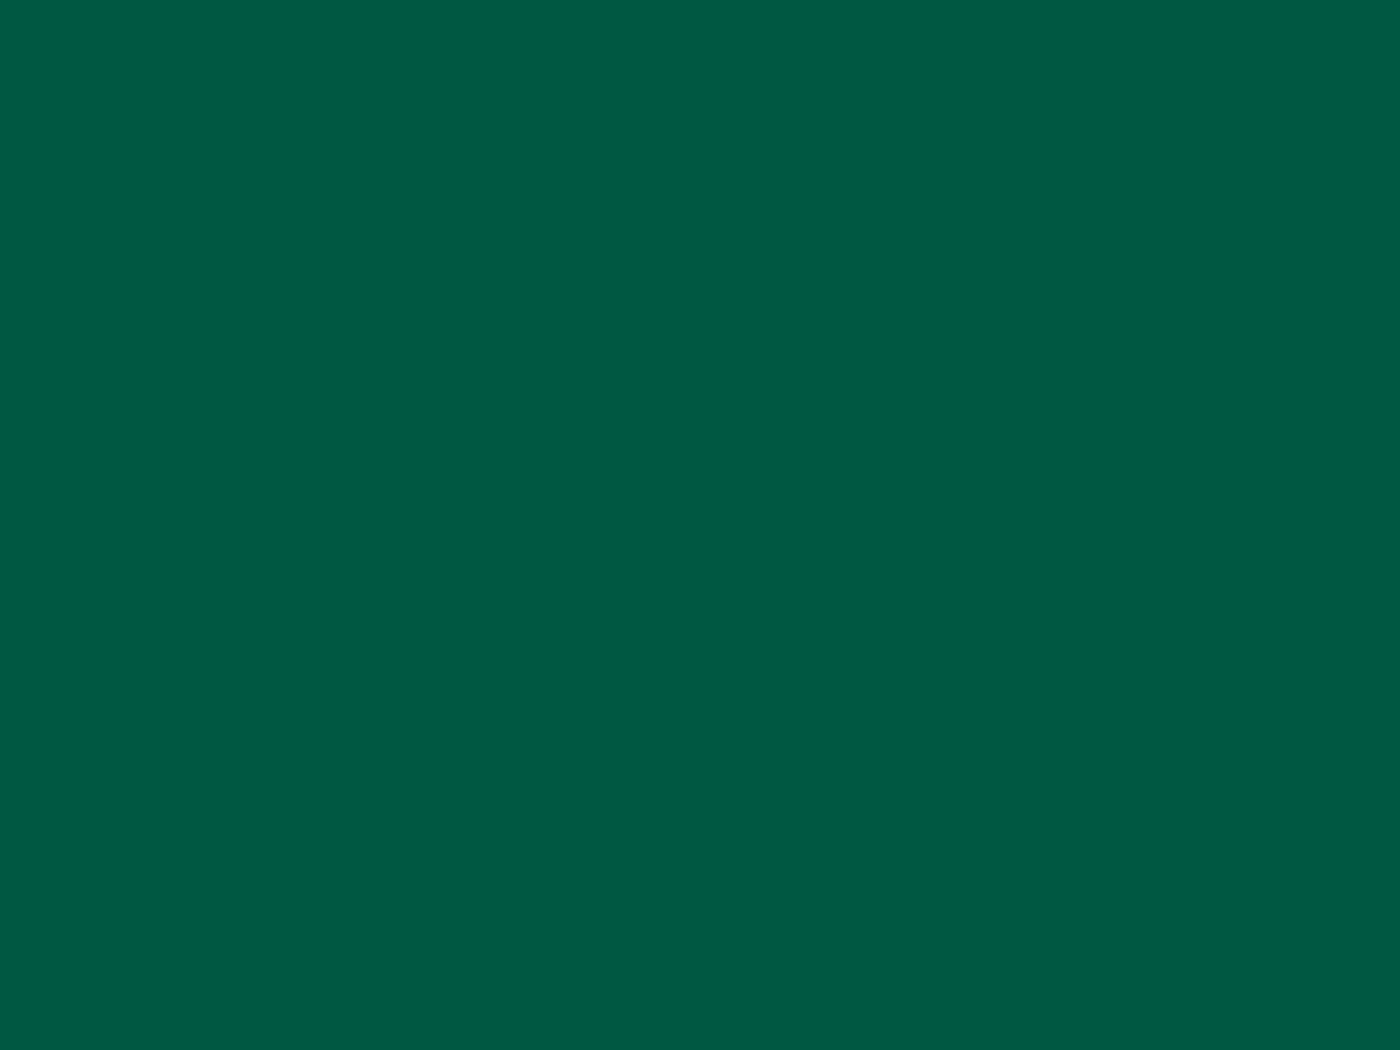 1400x1050 Sacramento State Green Solid Color Background